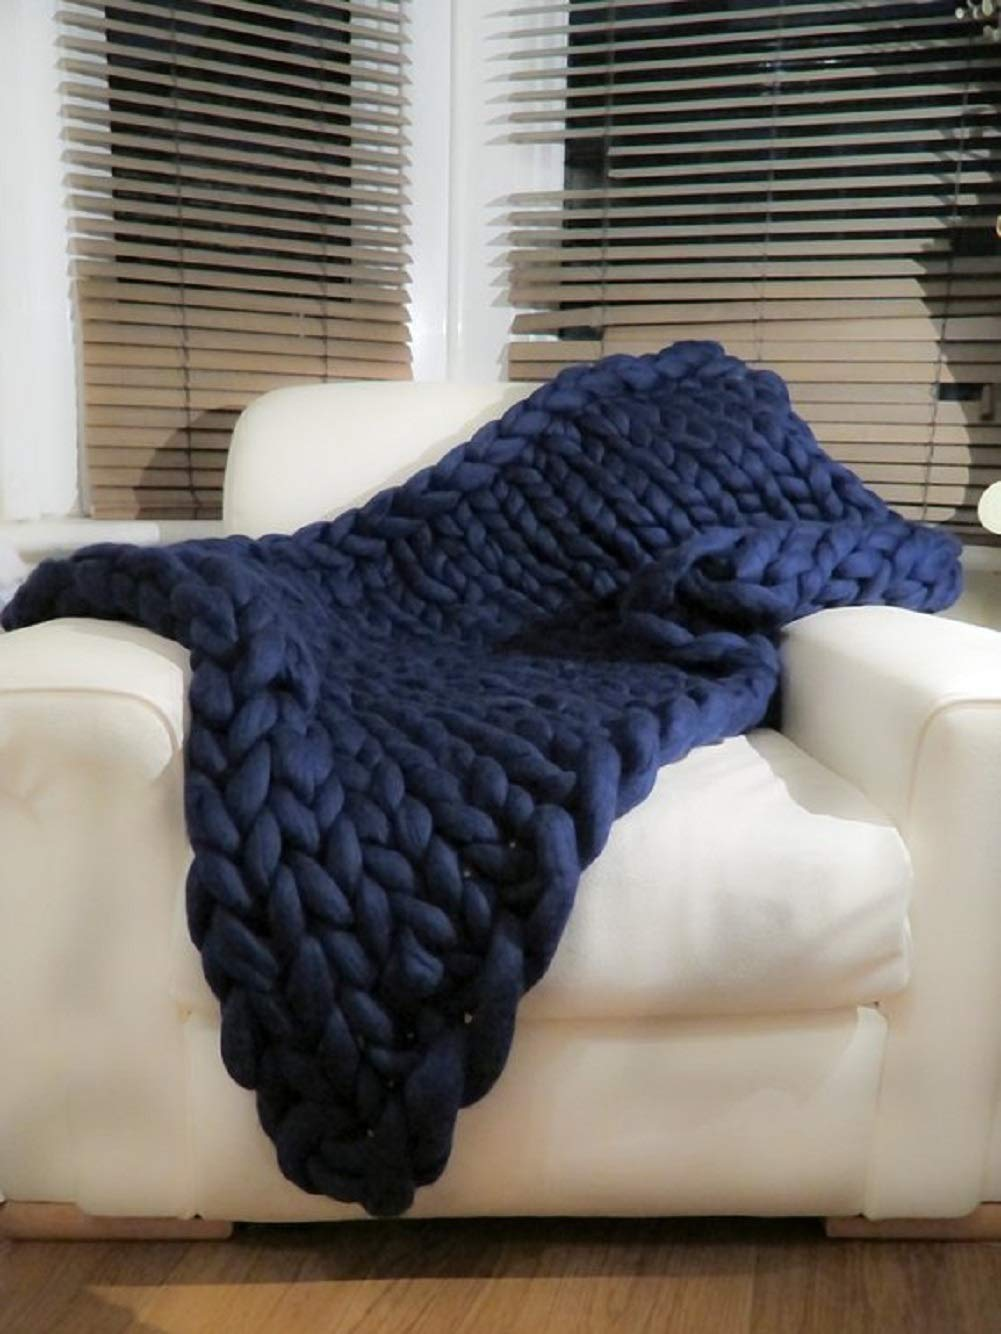 EASTSURE Bulky Knit Throw Chunky Sofa Blanket Hand-Made Pet Bed Chair Mat Rug,Navy,24x24 24x24